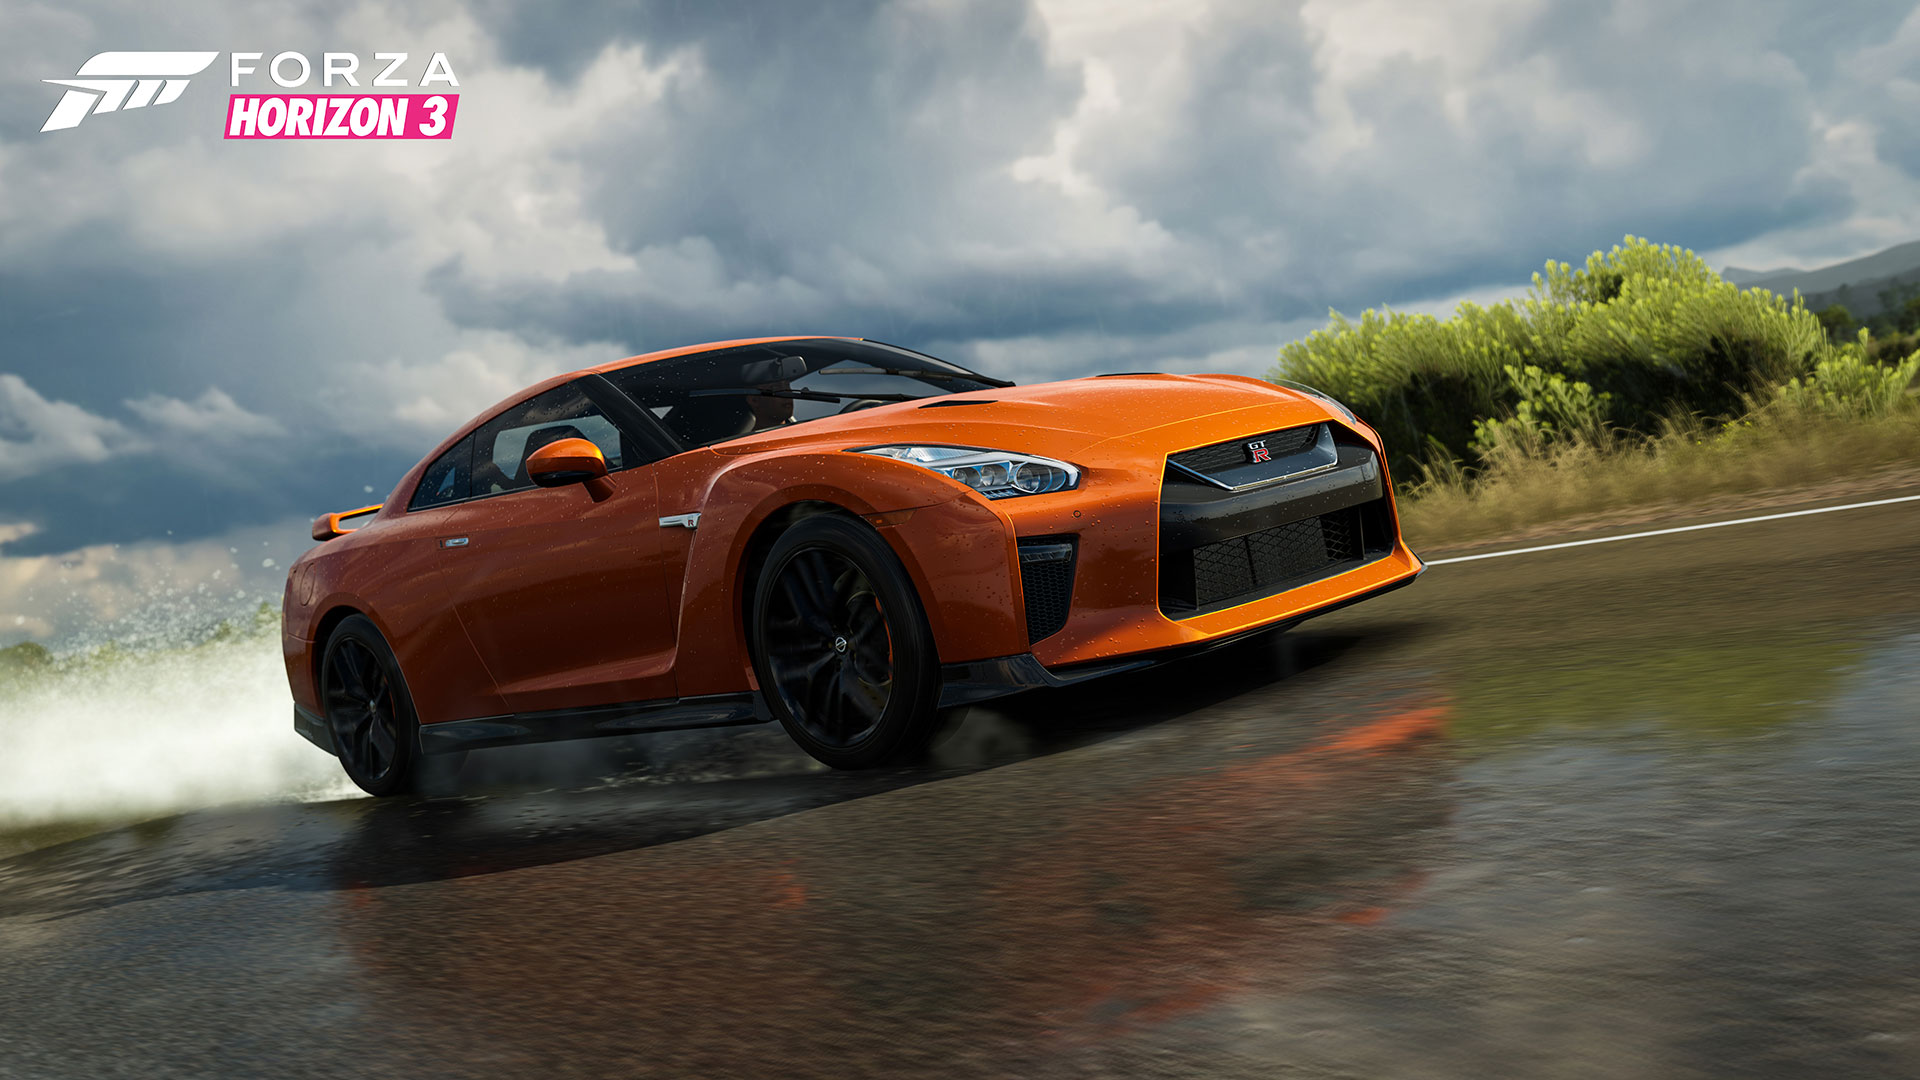 Forza Horizon 3 HD Wallpapers and Background Images   stmednet 1920x1080